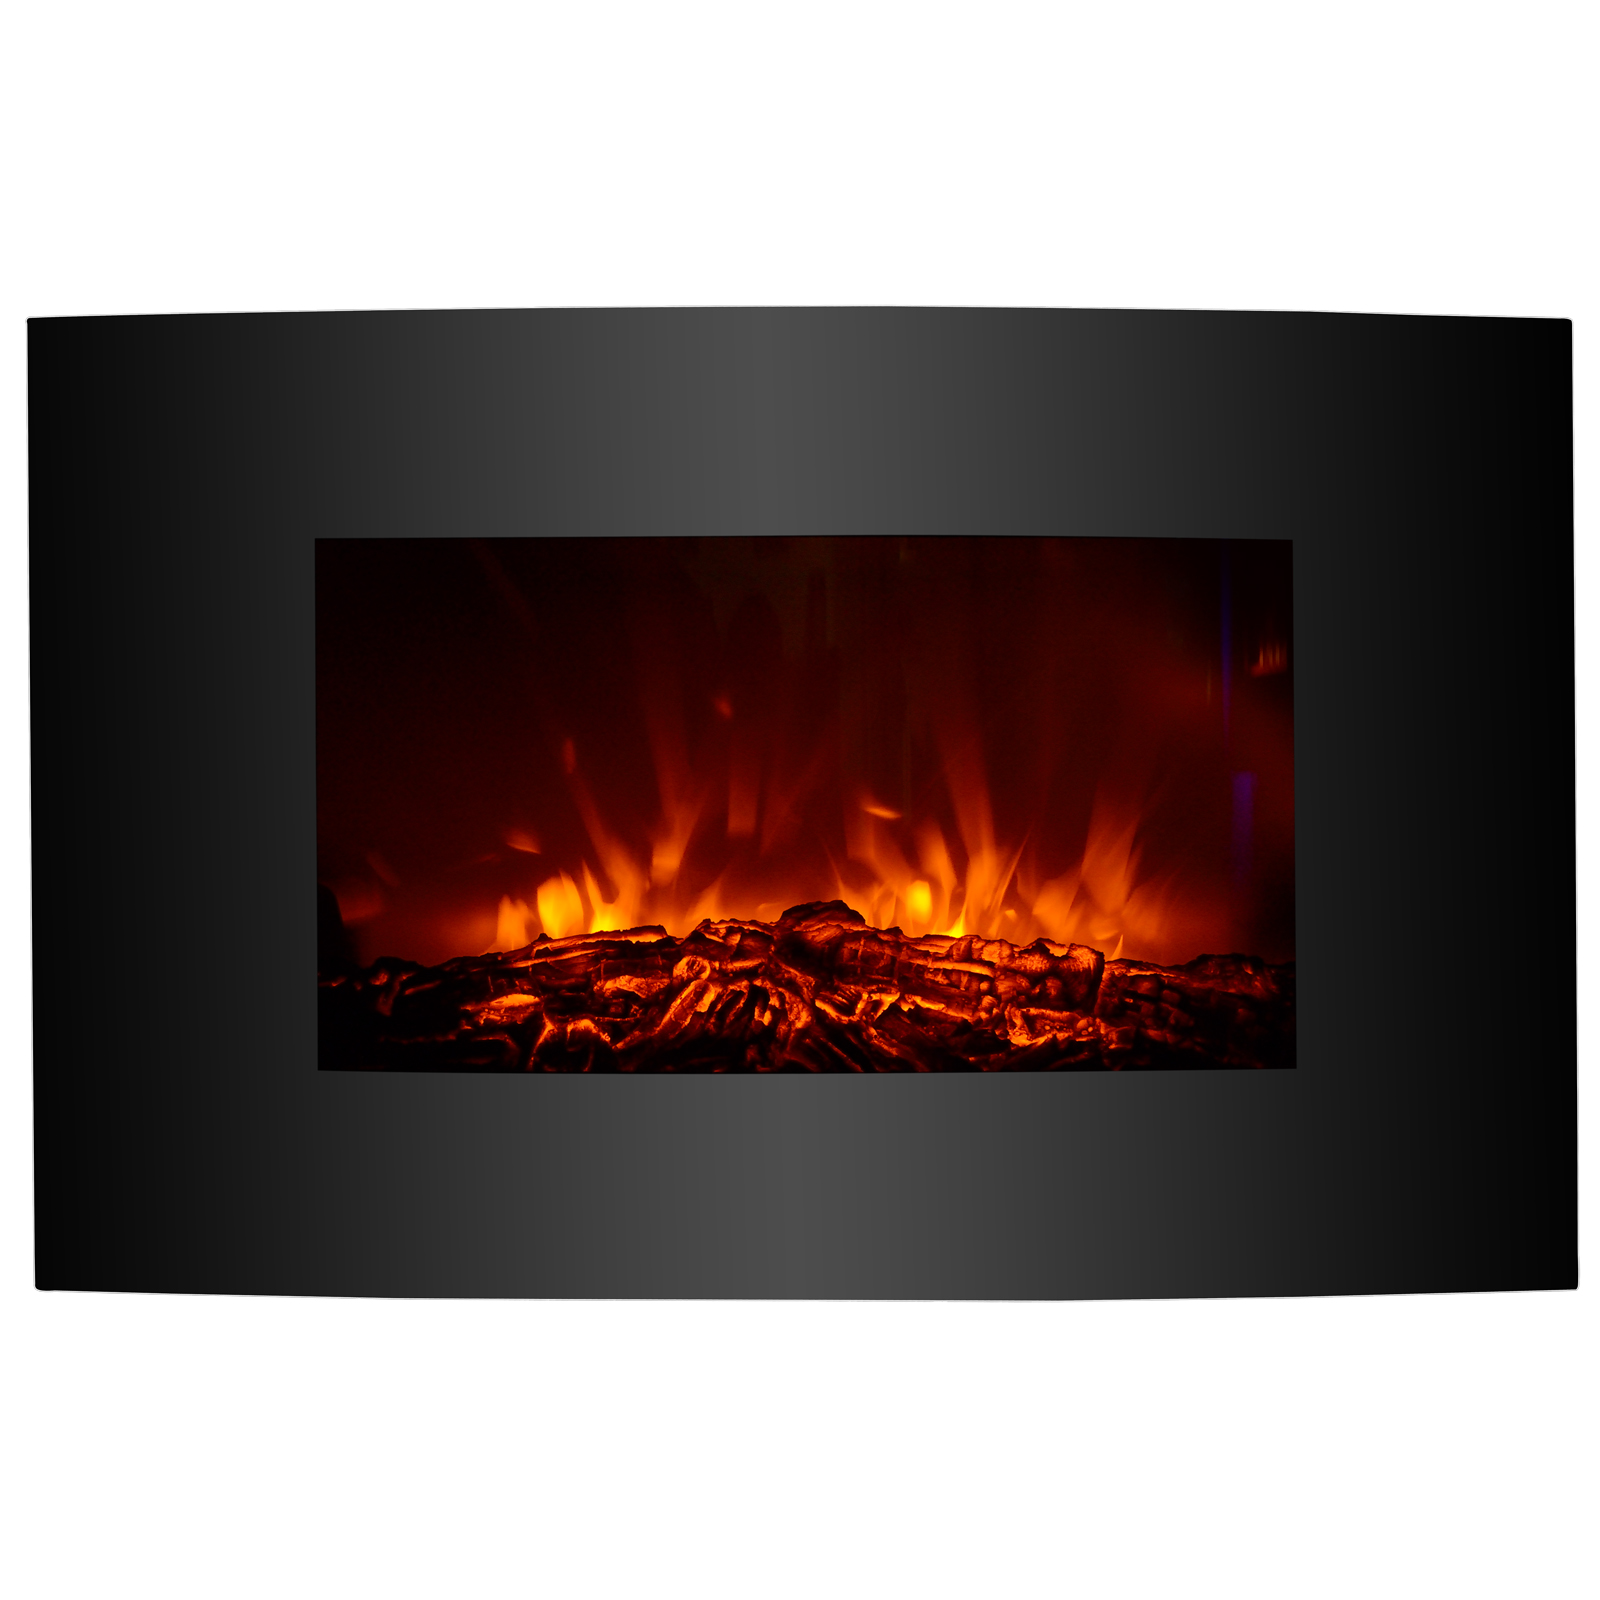 "Click here to buy 35""x22"" XL Large 1500W Electric Fireplace Wall Mount Heater w  Remote Adjustable by Uenjoy."